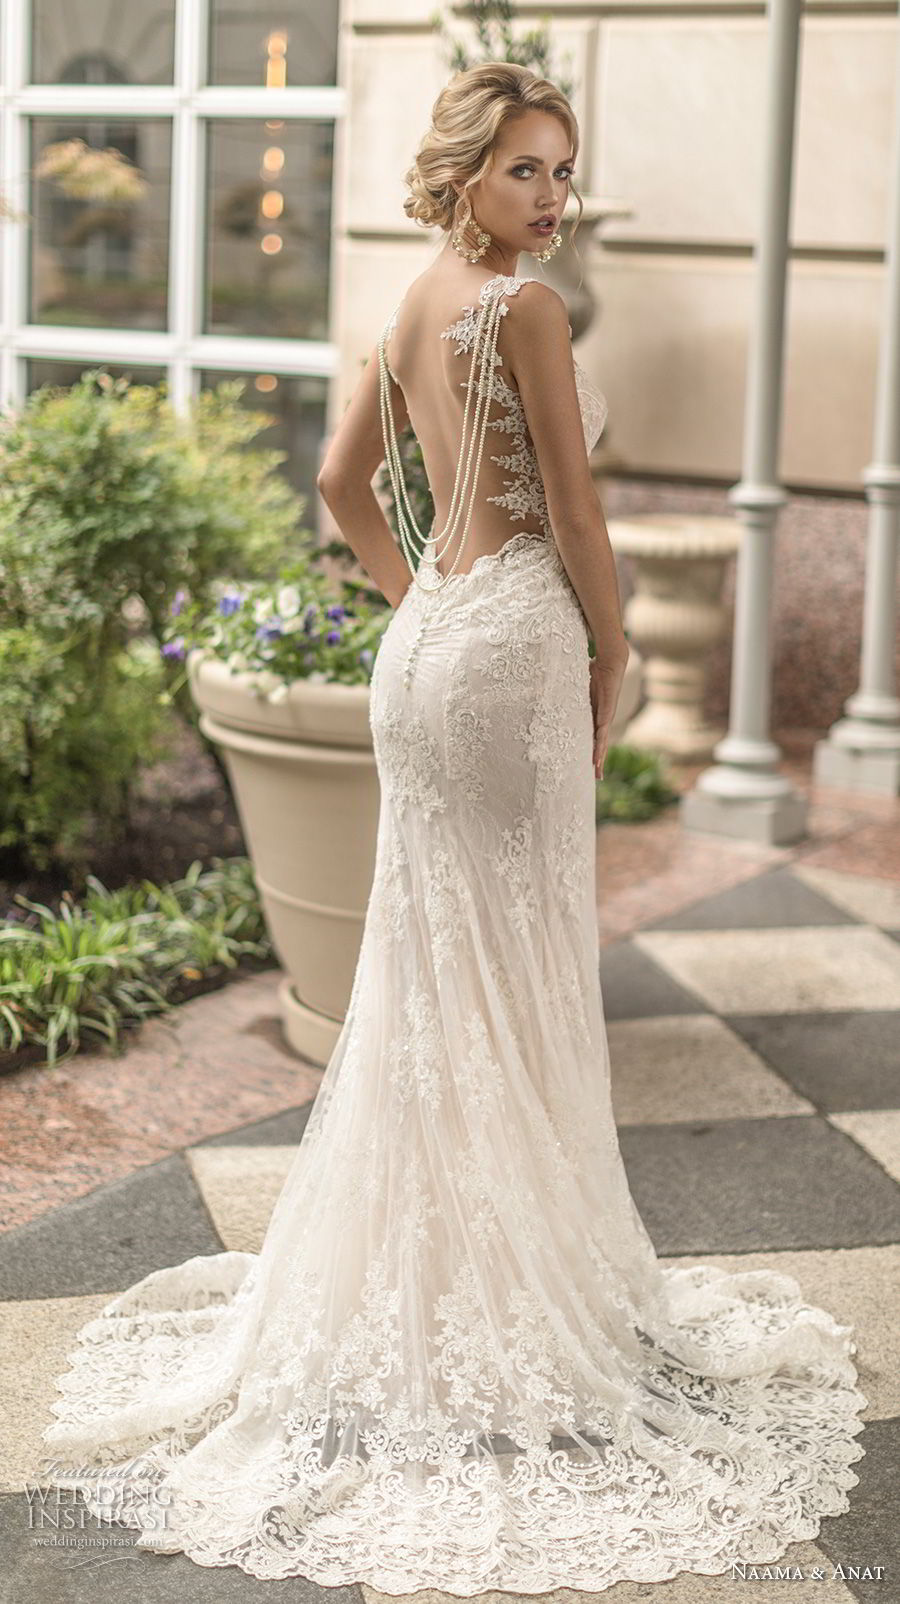 naama anat spring 2019 bridal sleeveless embellished strap sweetheart neckline full embellishment elegant fit and flare mermaid wedding dress open low back sweep train (2) bv